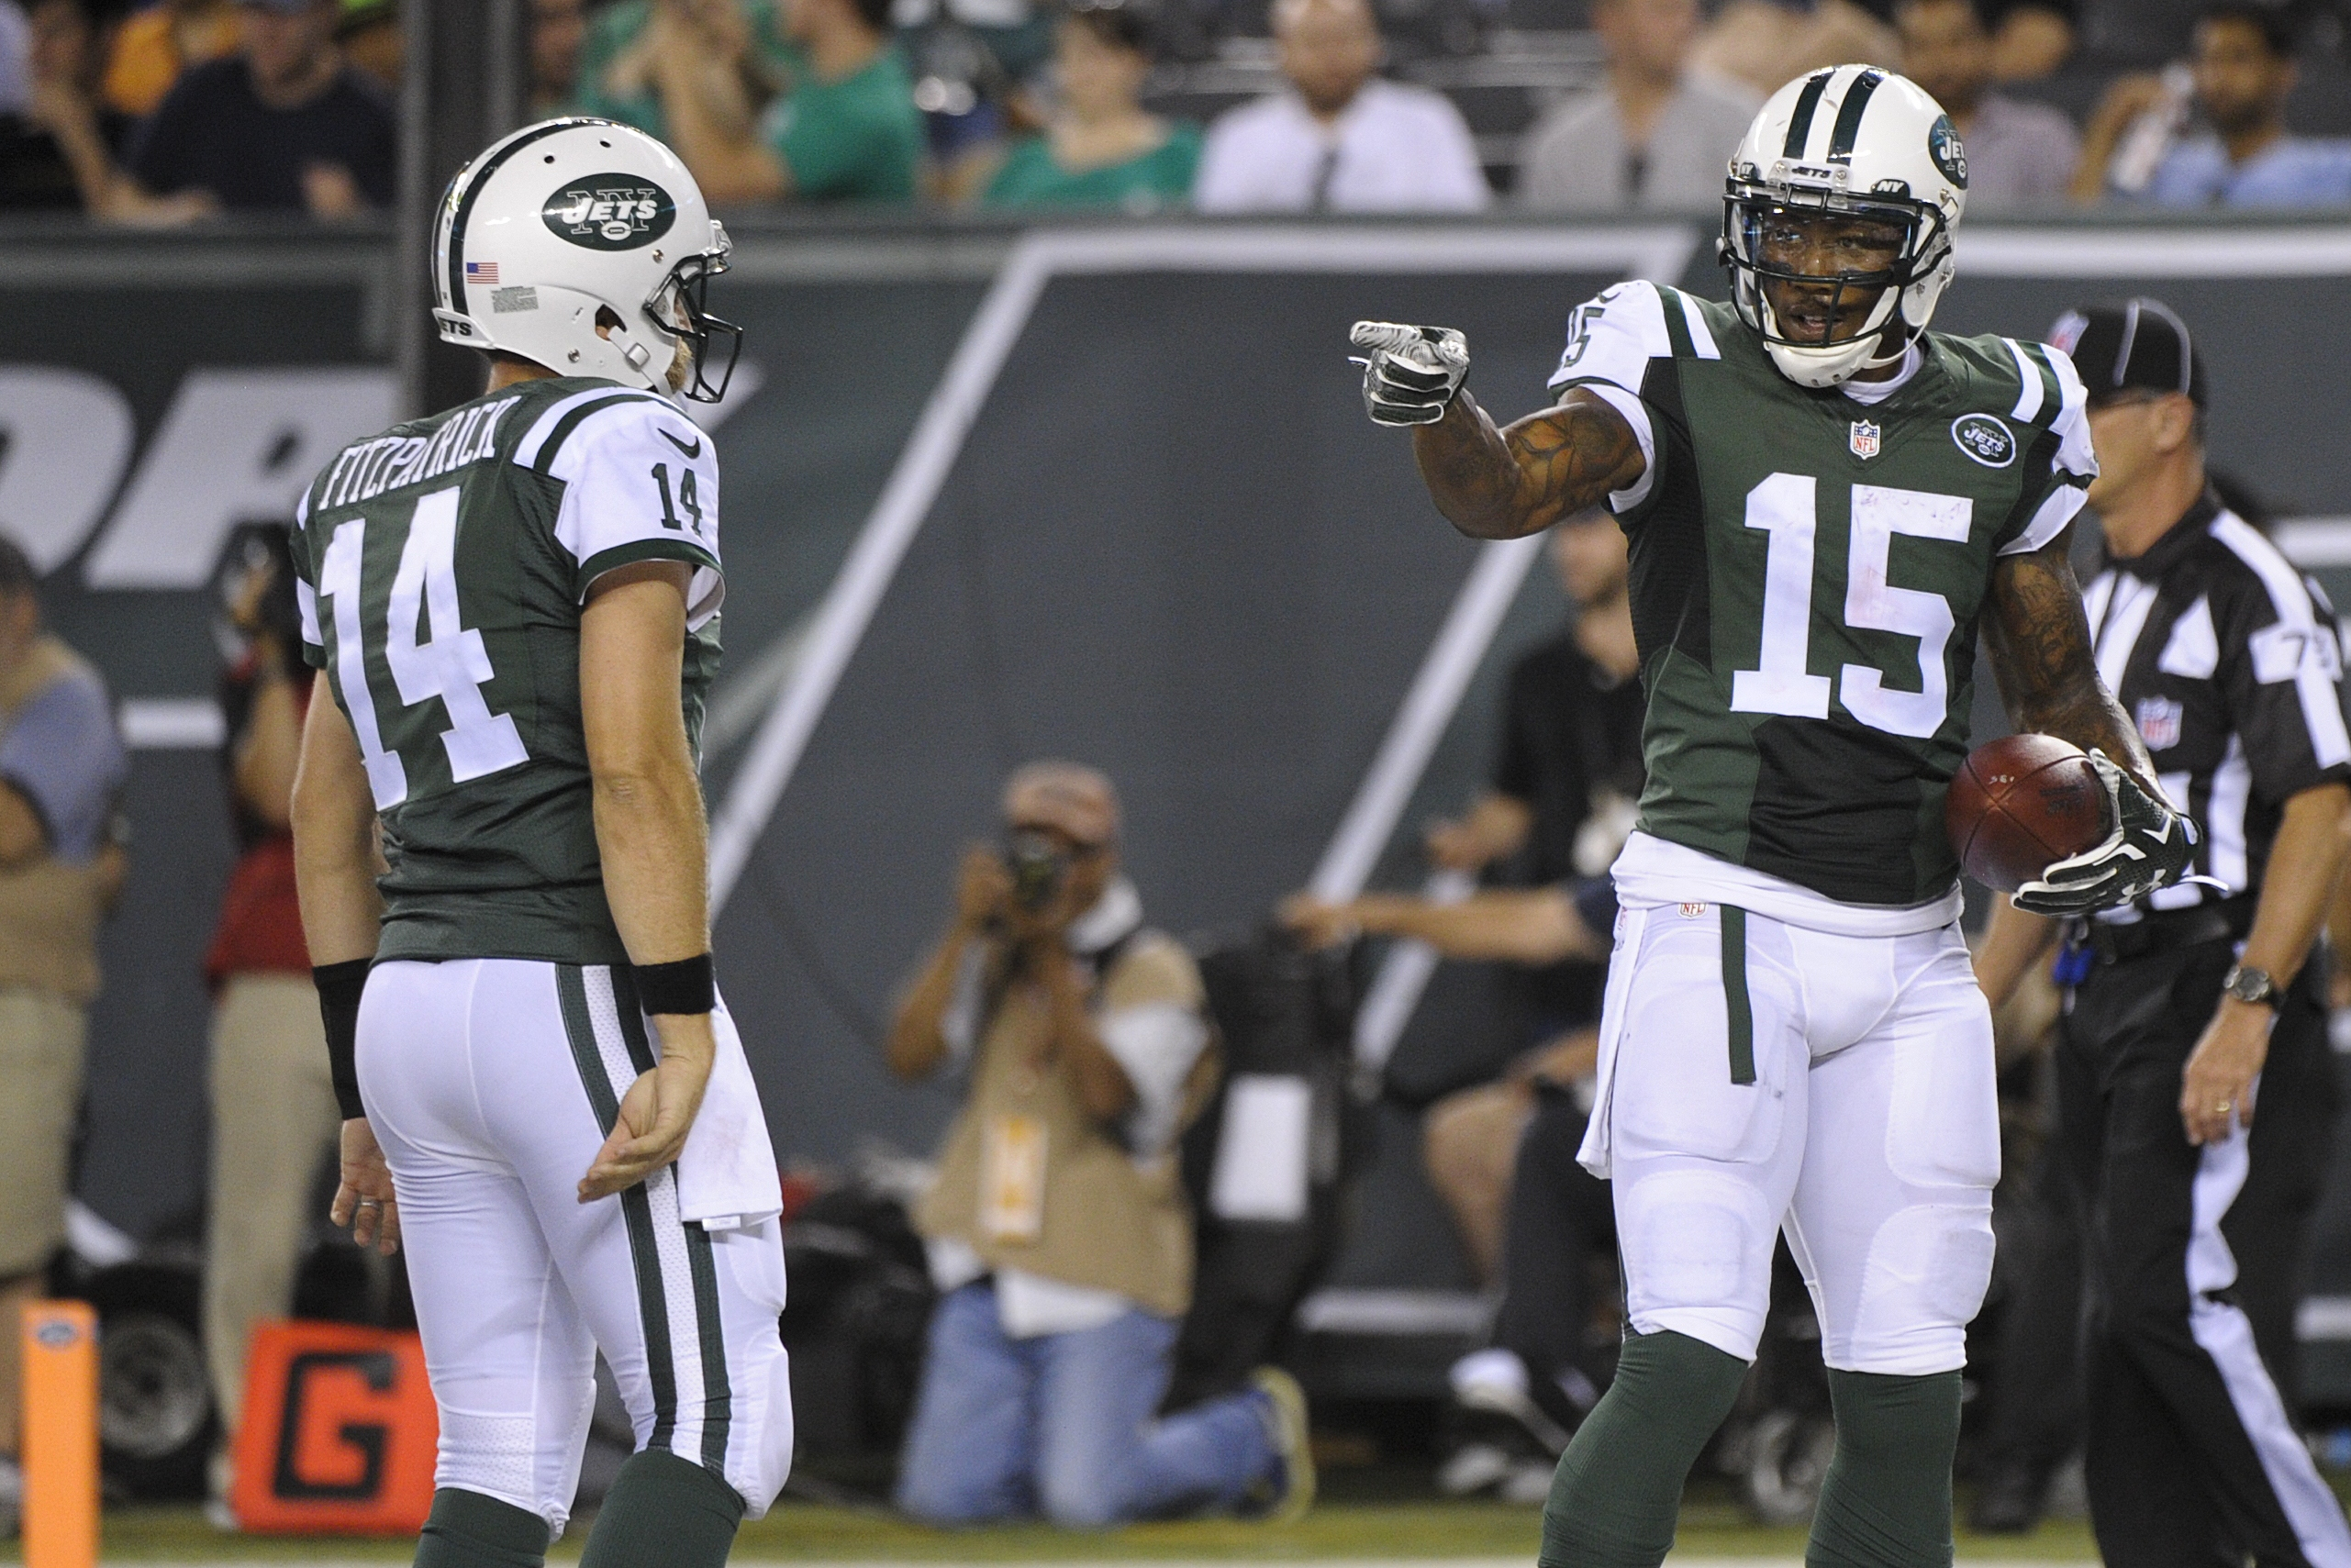 New York Jets wide receiver Brandon Marshall (15) gestures to quarterback Ryan Fitzpatrick (14) after they teamed up on a 2-point conversion during the first half of a preseason NFL football game against the Atlanta Falcons on Friday, Aug. 21, 2015, in Ea